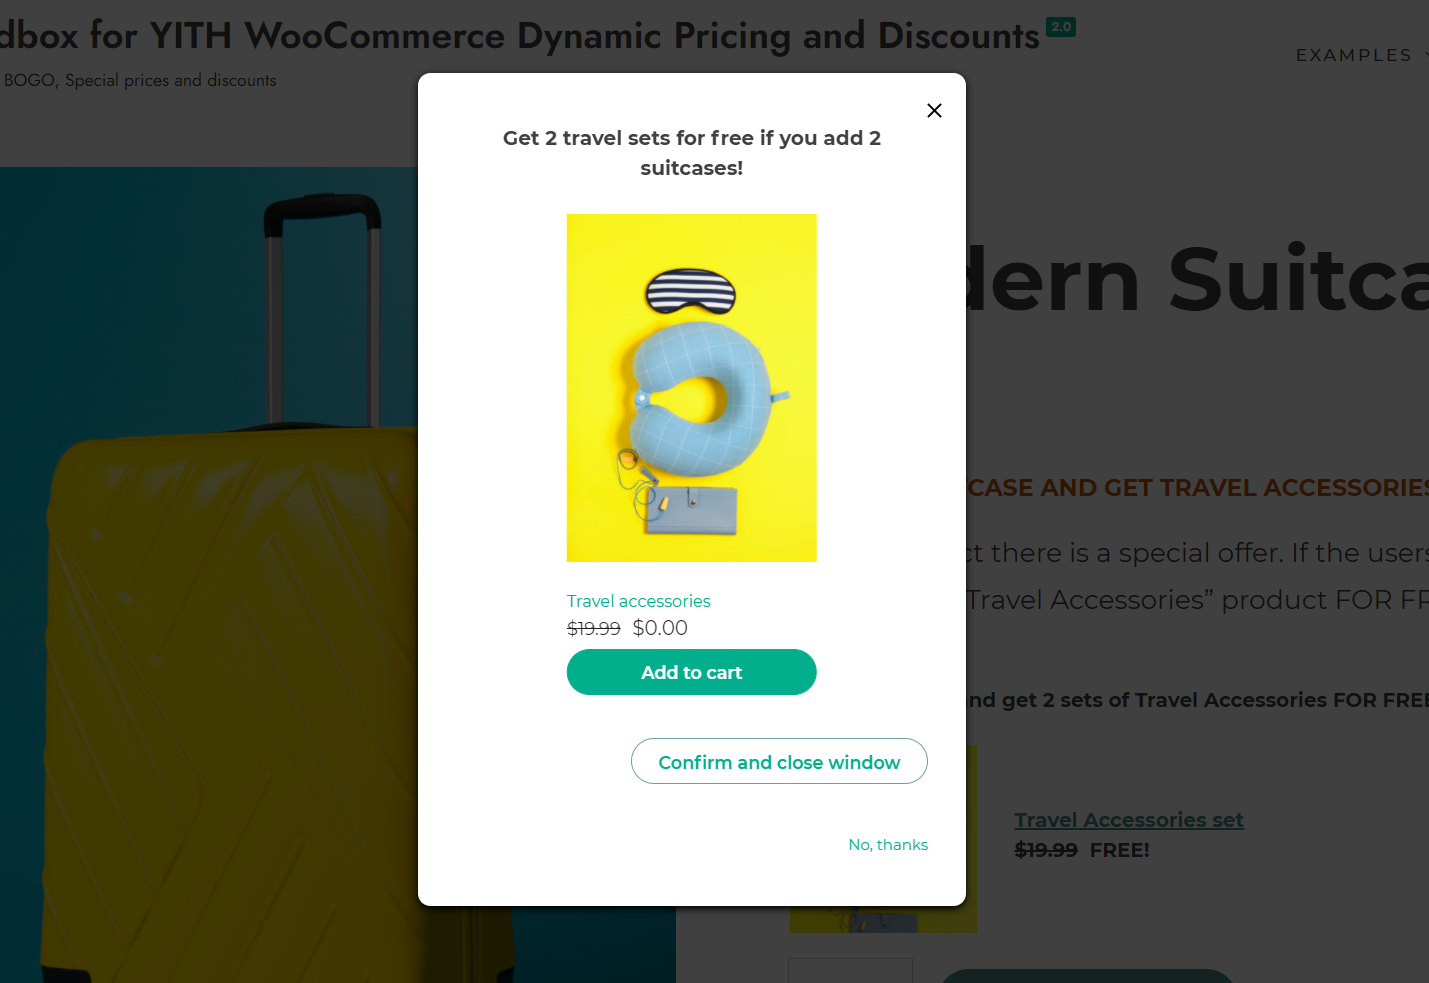 Promote the offer in a modal window